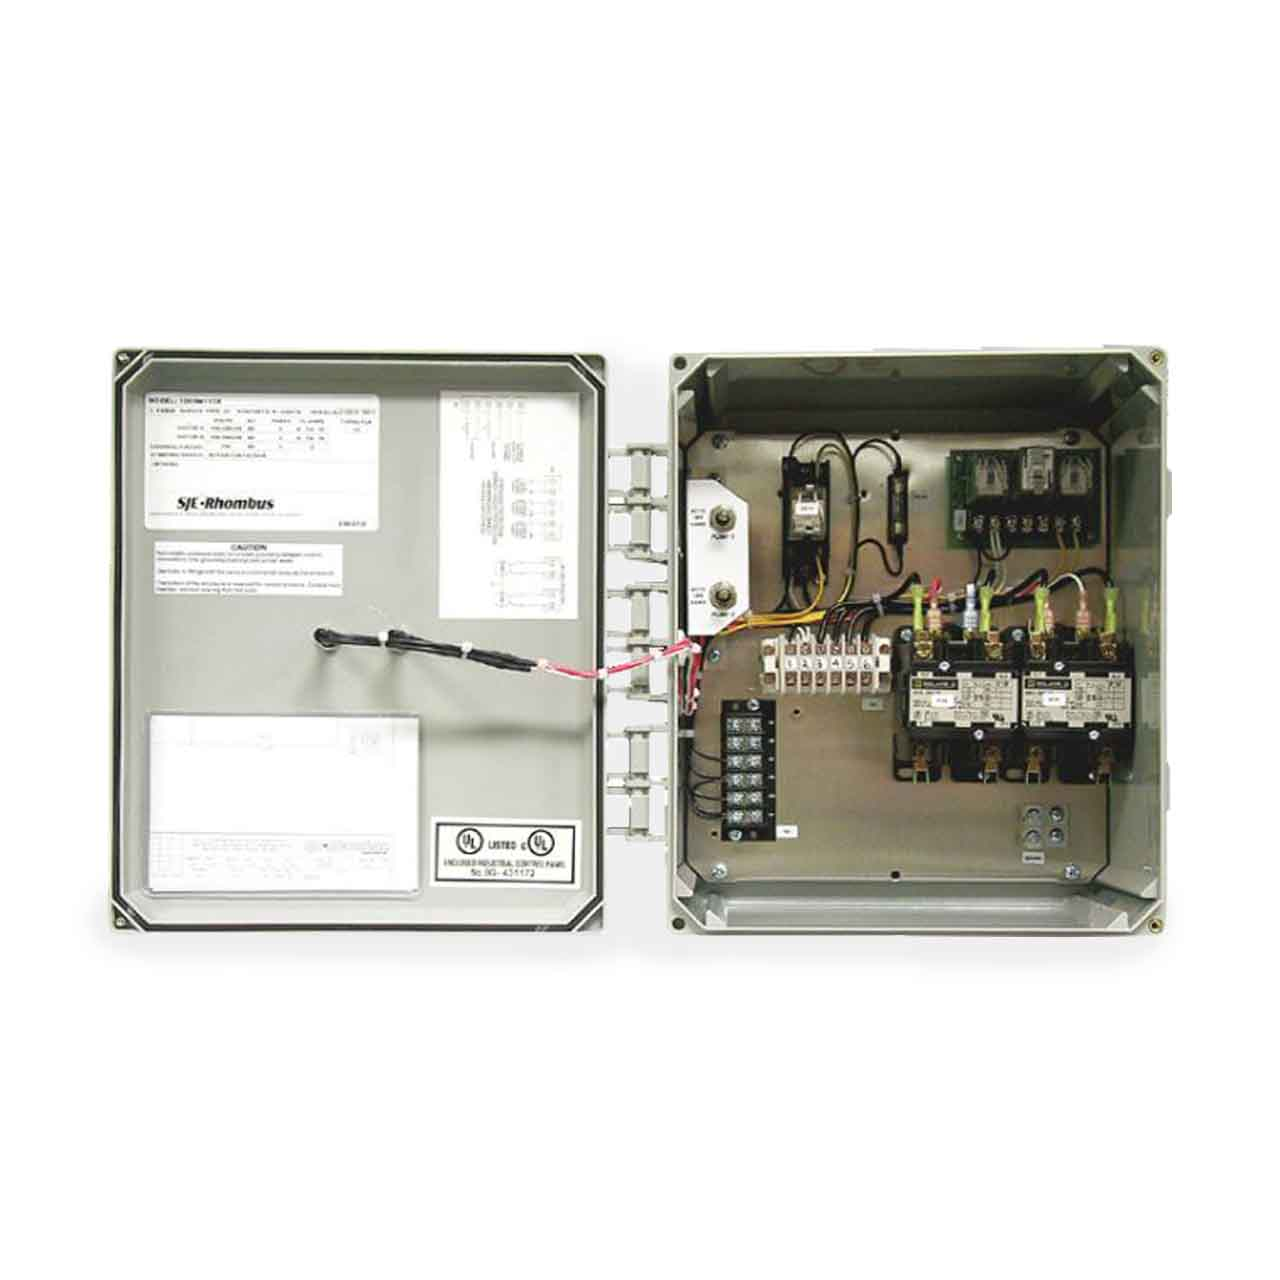 Switch Wiring Diagram Further Sump Pump Float Switch Diagram On